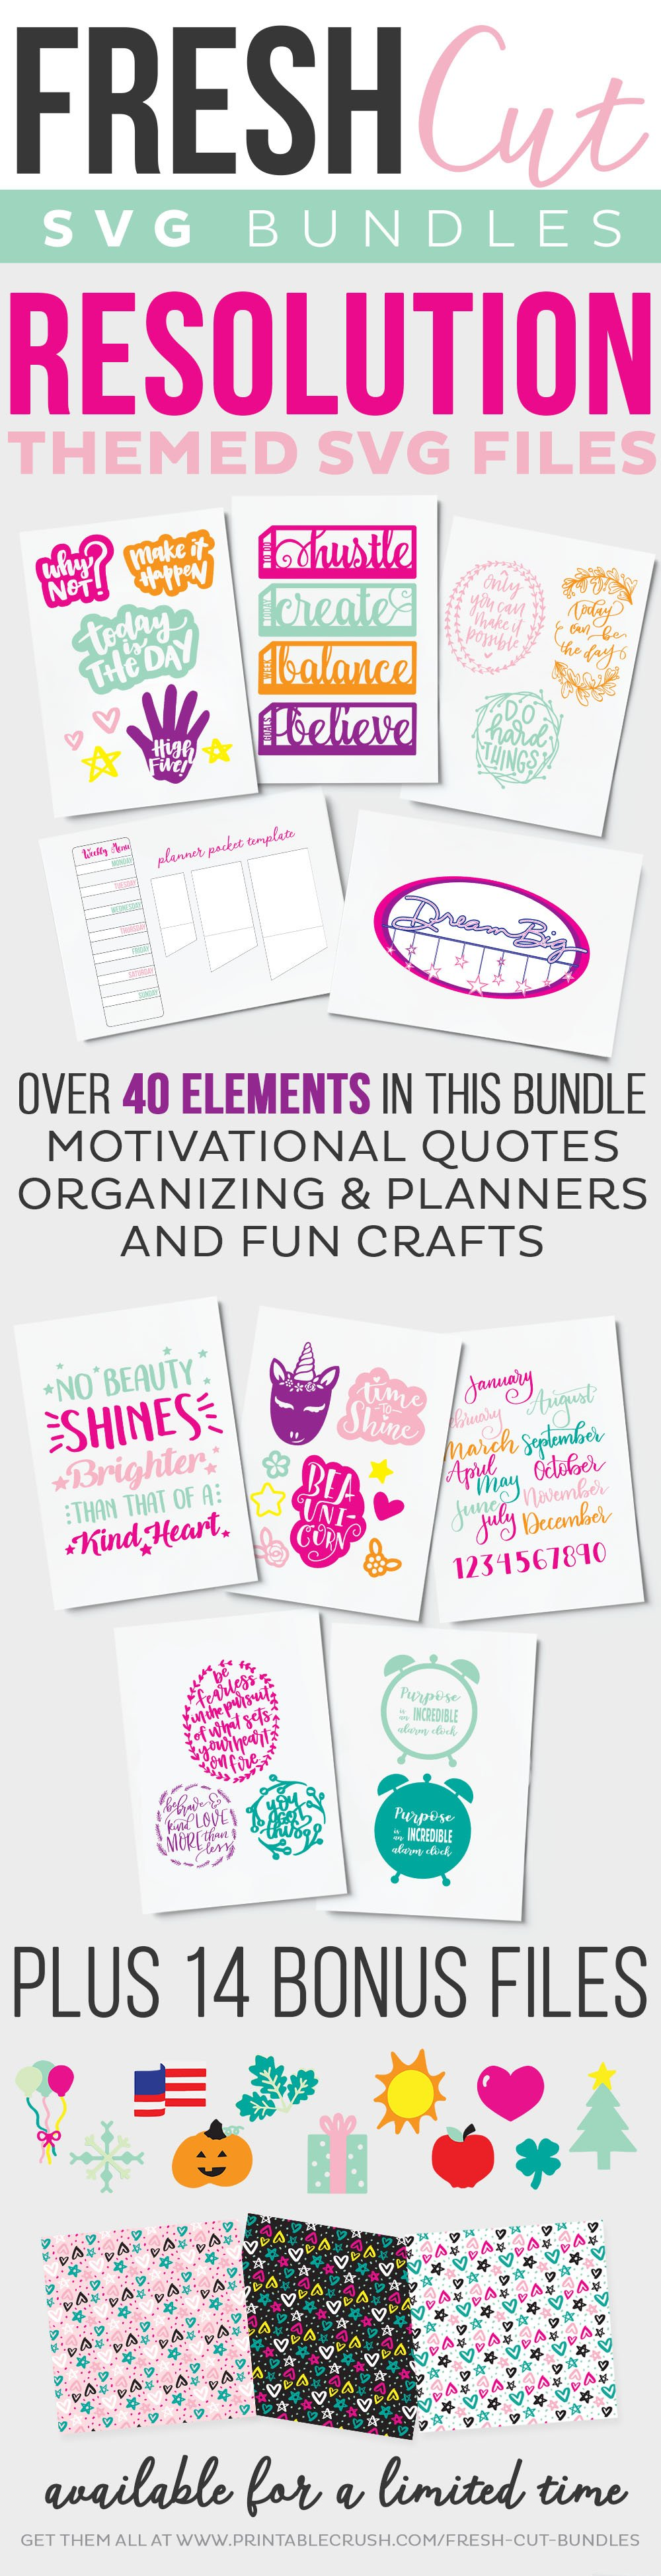 Fresh Cuts SVG Bundle - Over 40 elements and cut files for organization, planning and motivation. Only available for a limited time. #cutfiles #organization #planning #svgfiles